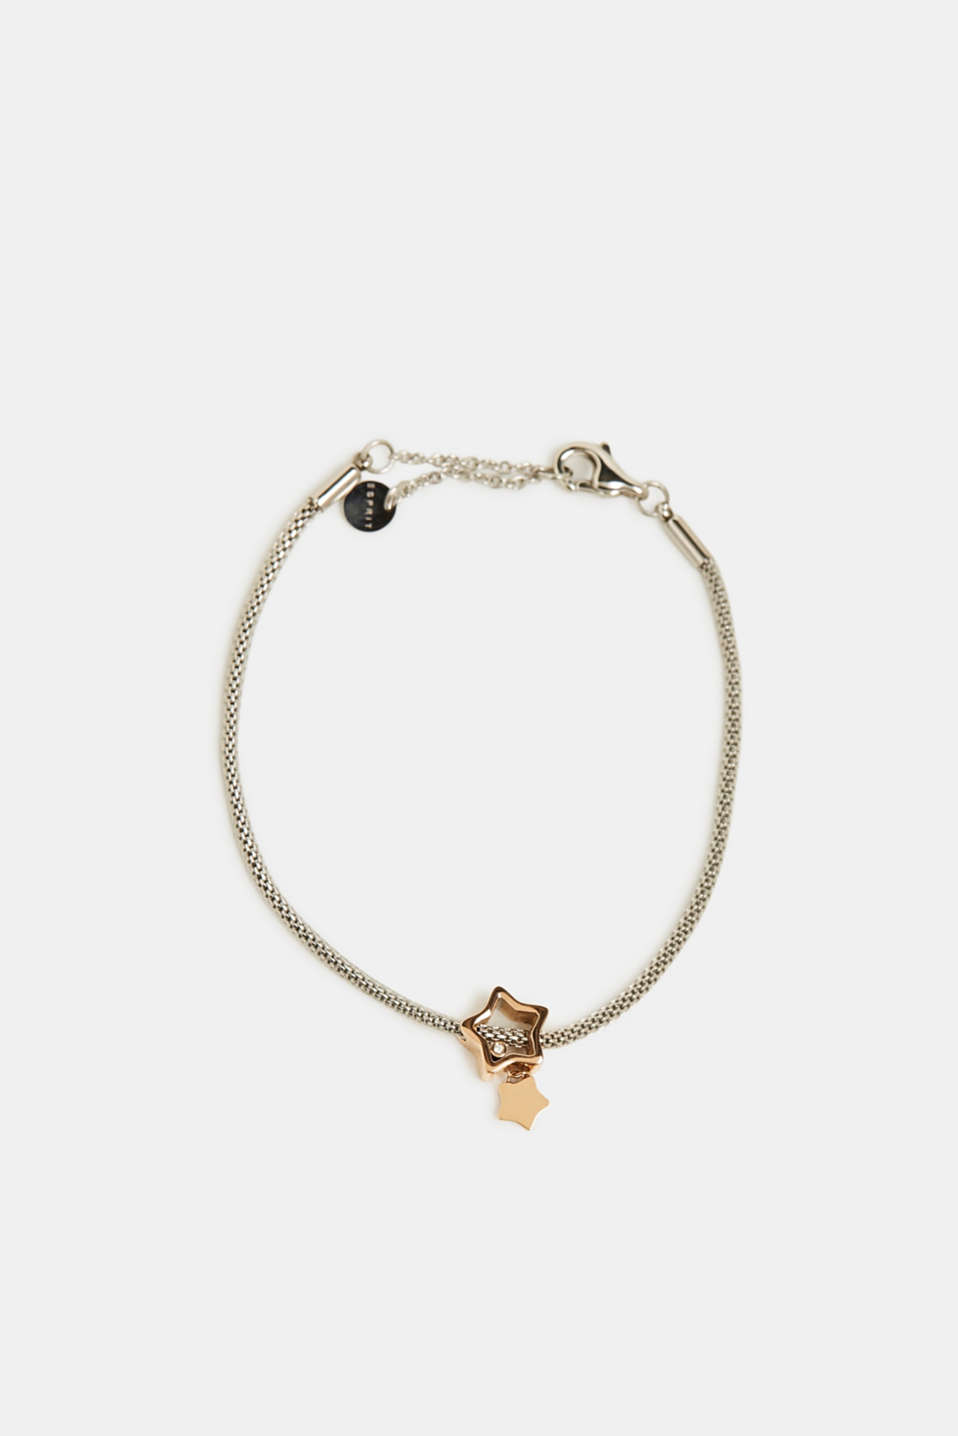 Esprit - Bracelet with zirconia charm, stainless steel